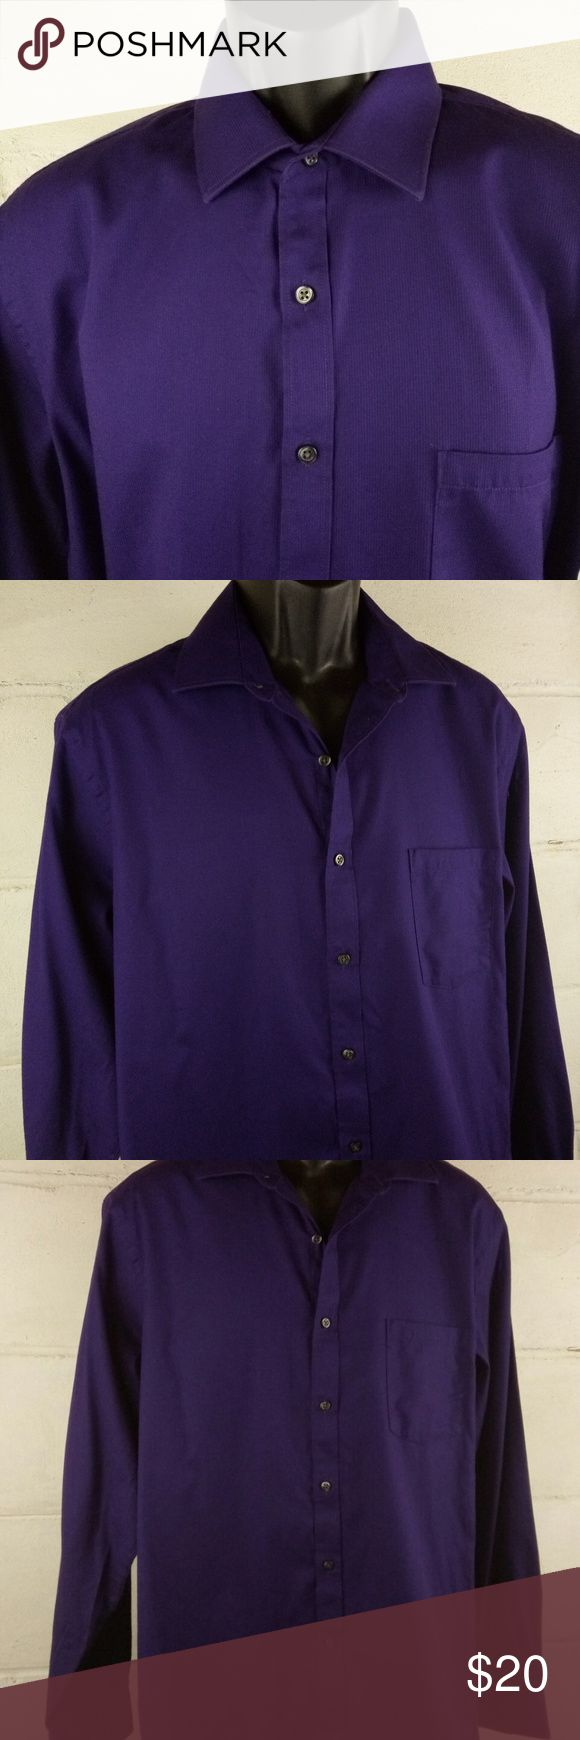 Van Heusen Dress Shirt Size 16.5 Purple Gently pre-owned clean excellent condition. May have signs of normal wear, but do not have rips or holes (unless made that way).   See photos above for actual details and the MEASUREMENTS & SIZING CHART to answer your Sizing Questions.  We do our best to maintain quality standards during inspection before listing items for sale in our closet, so you are happy to open your Poshmark package from Shebrew Trading Store!  We ship items immediately and…